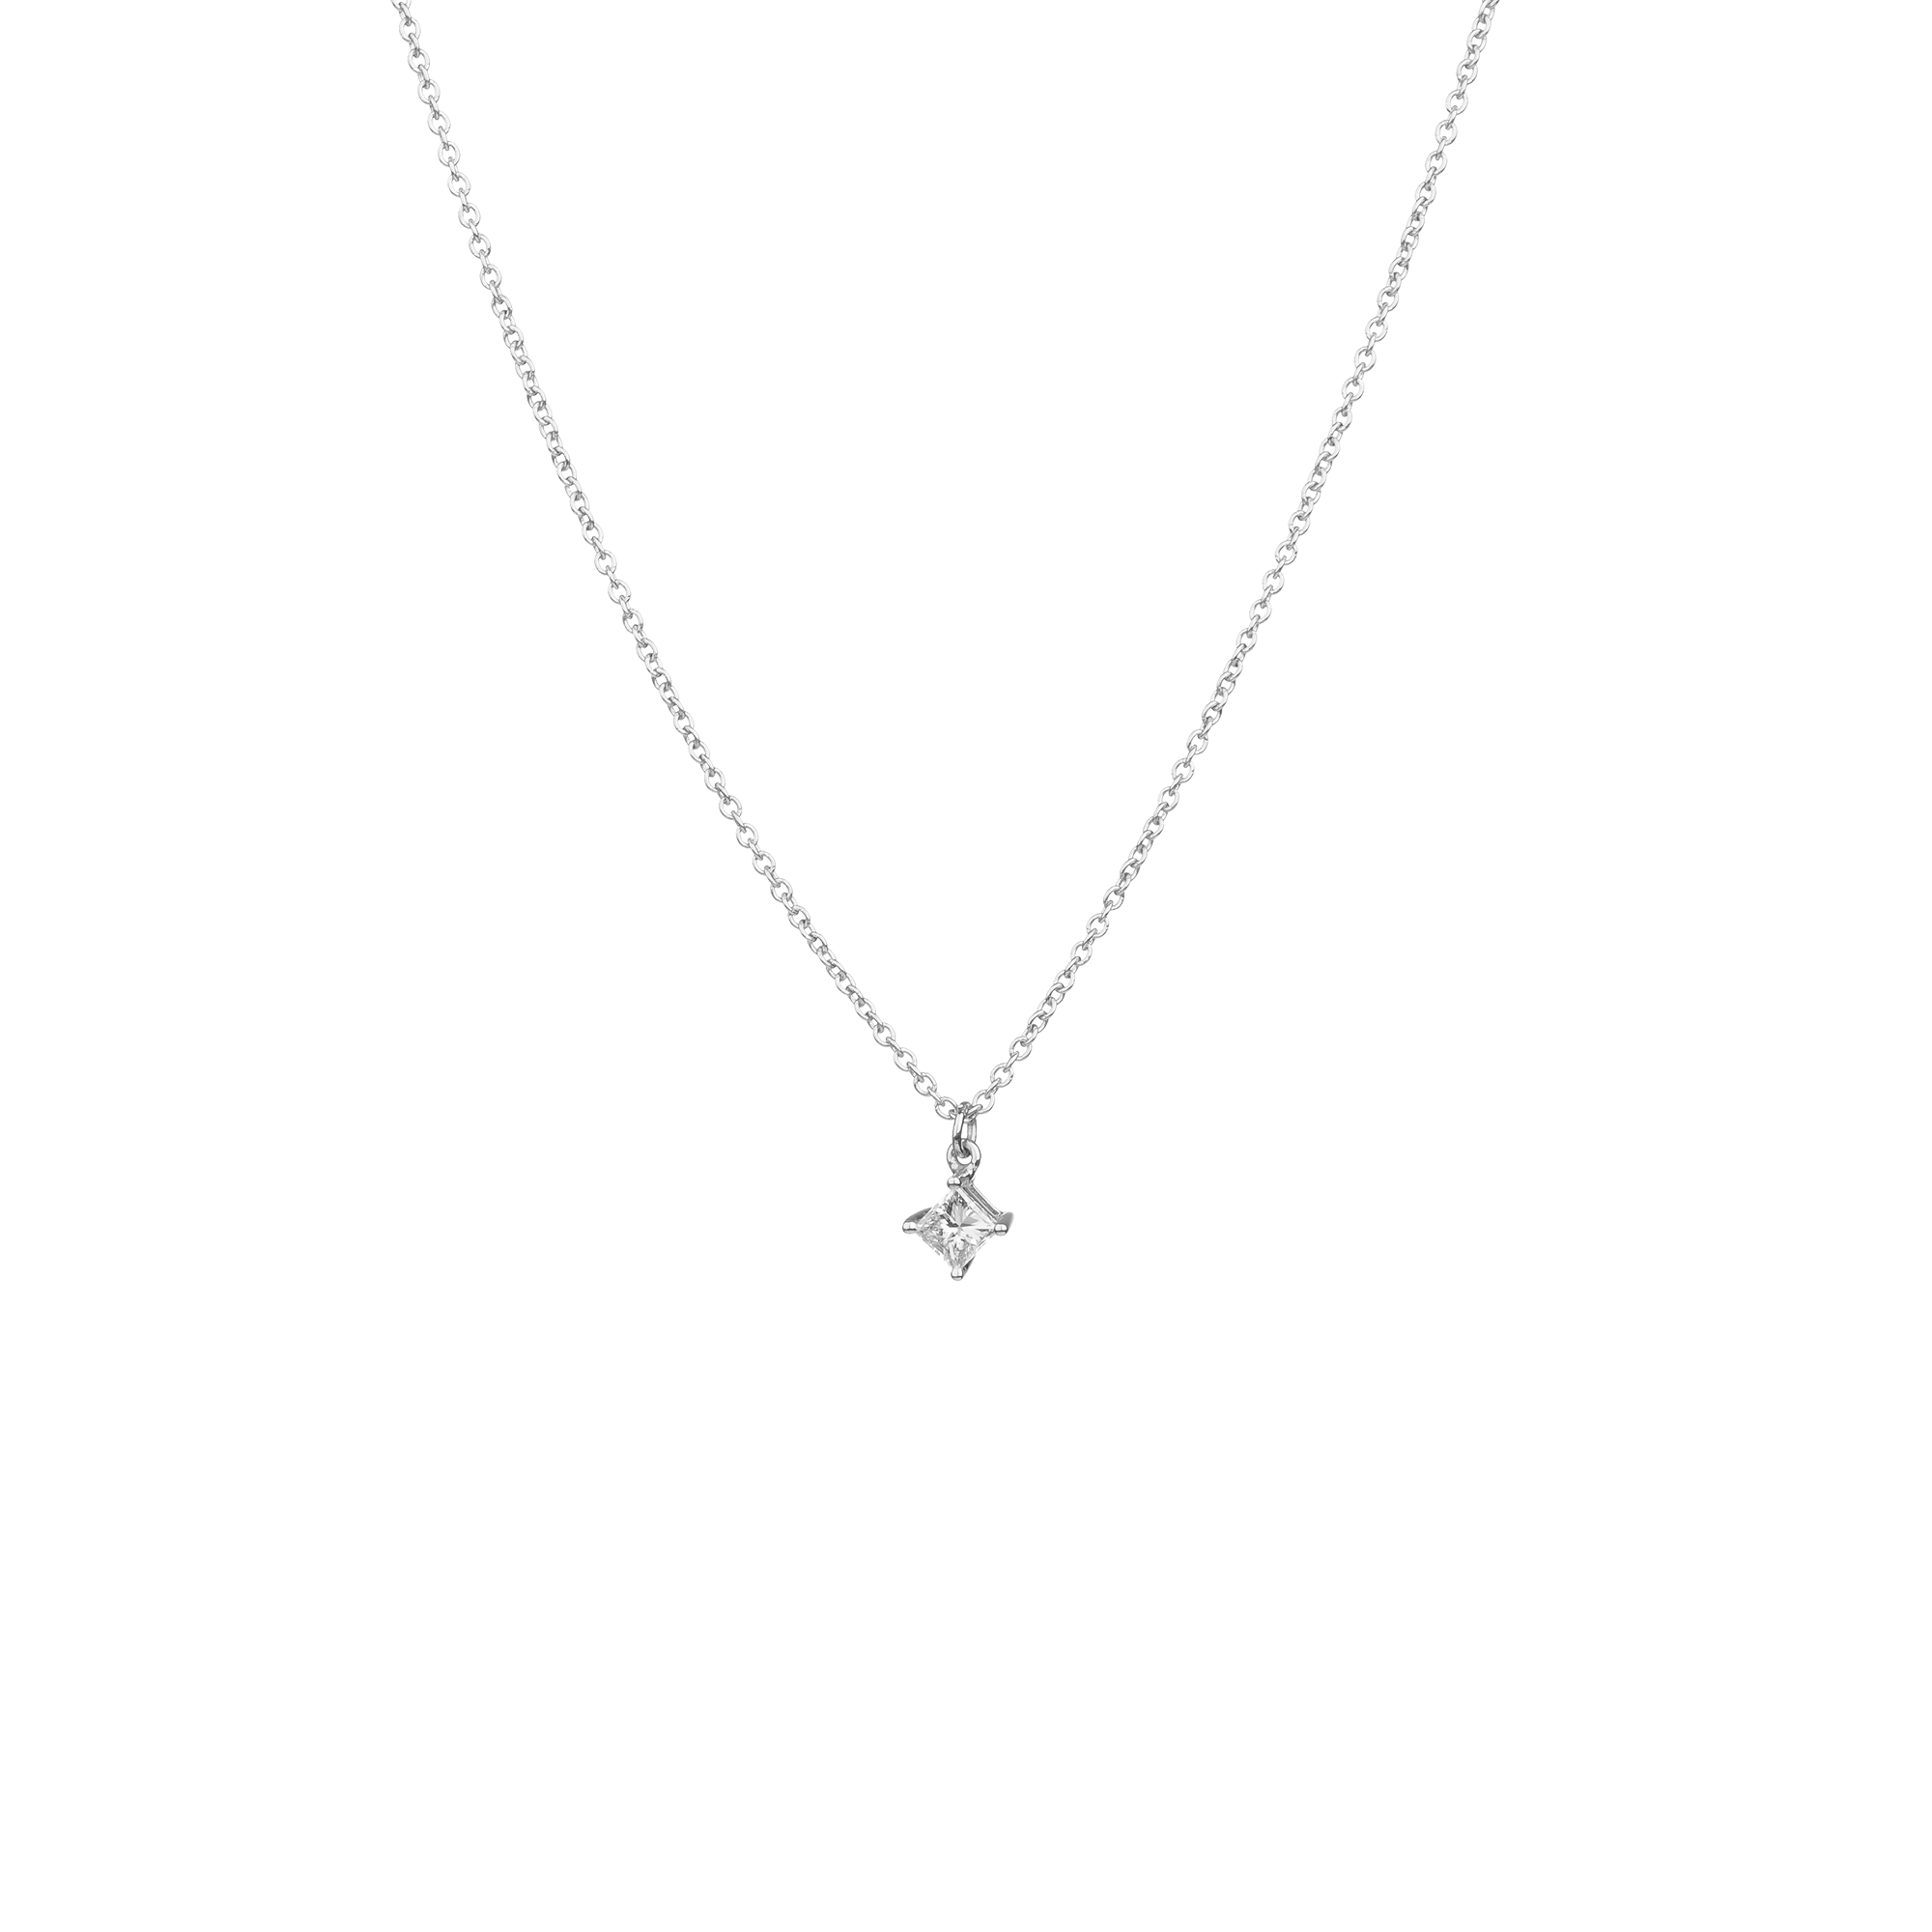 Necklace SOLITAIRE